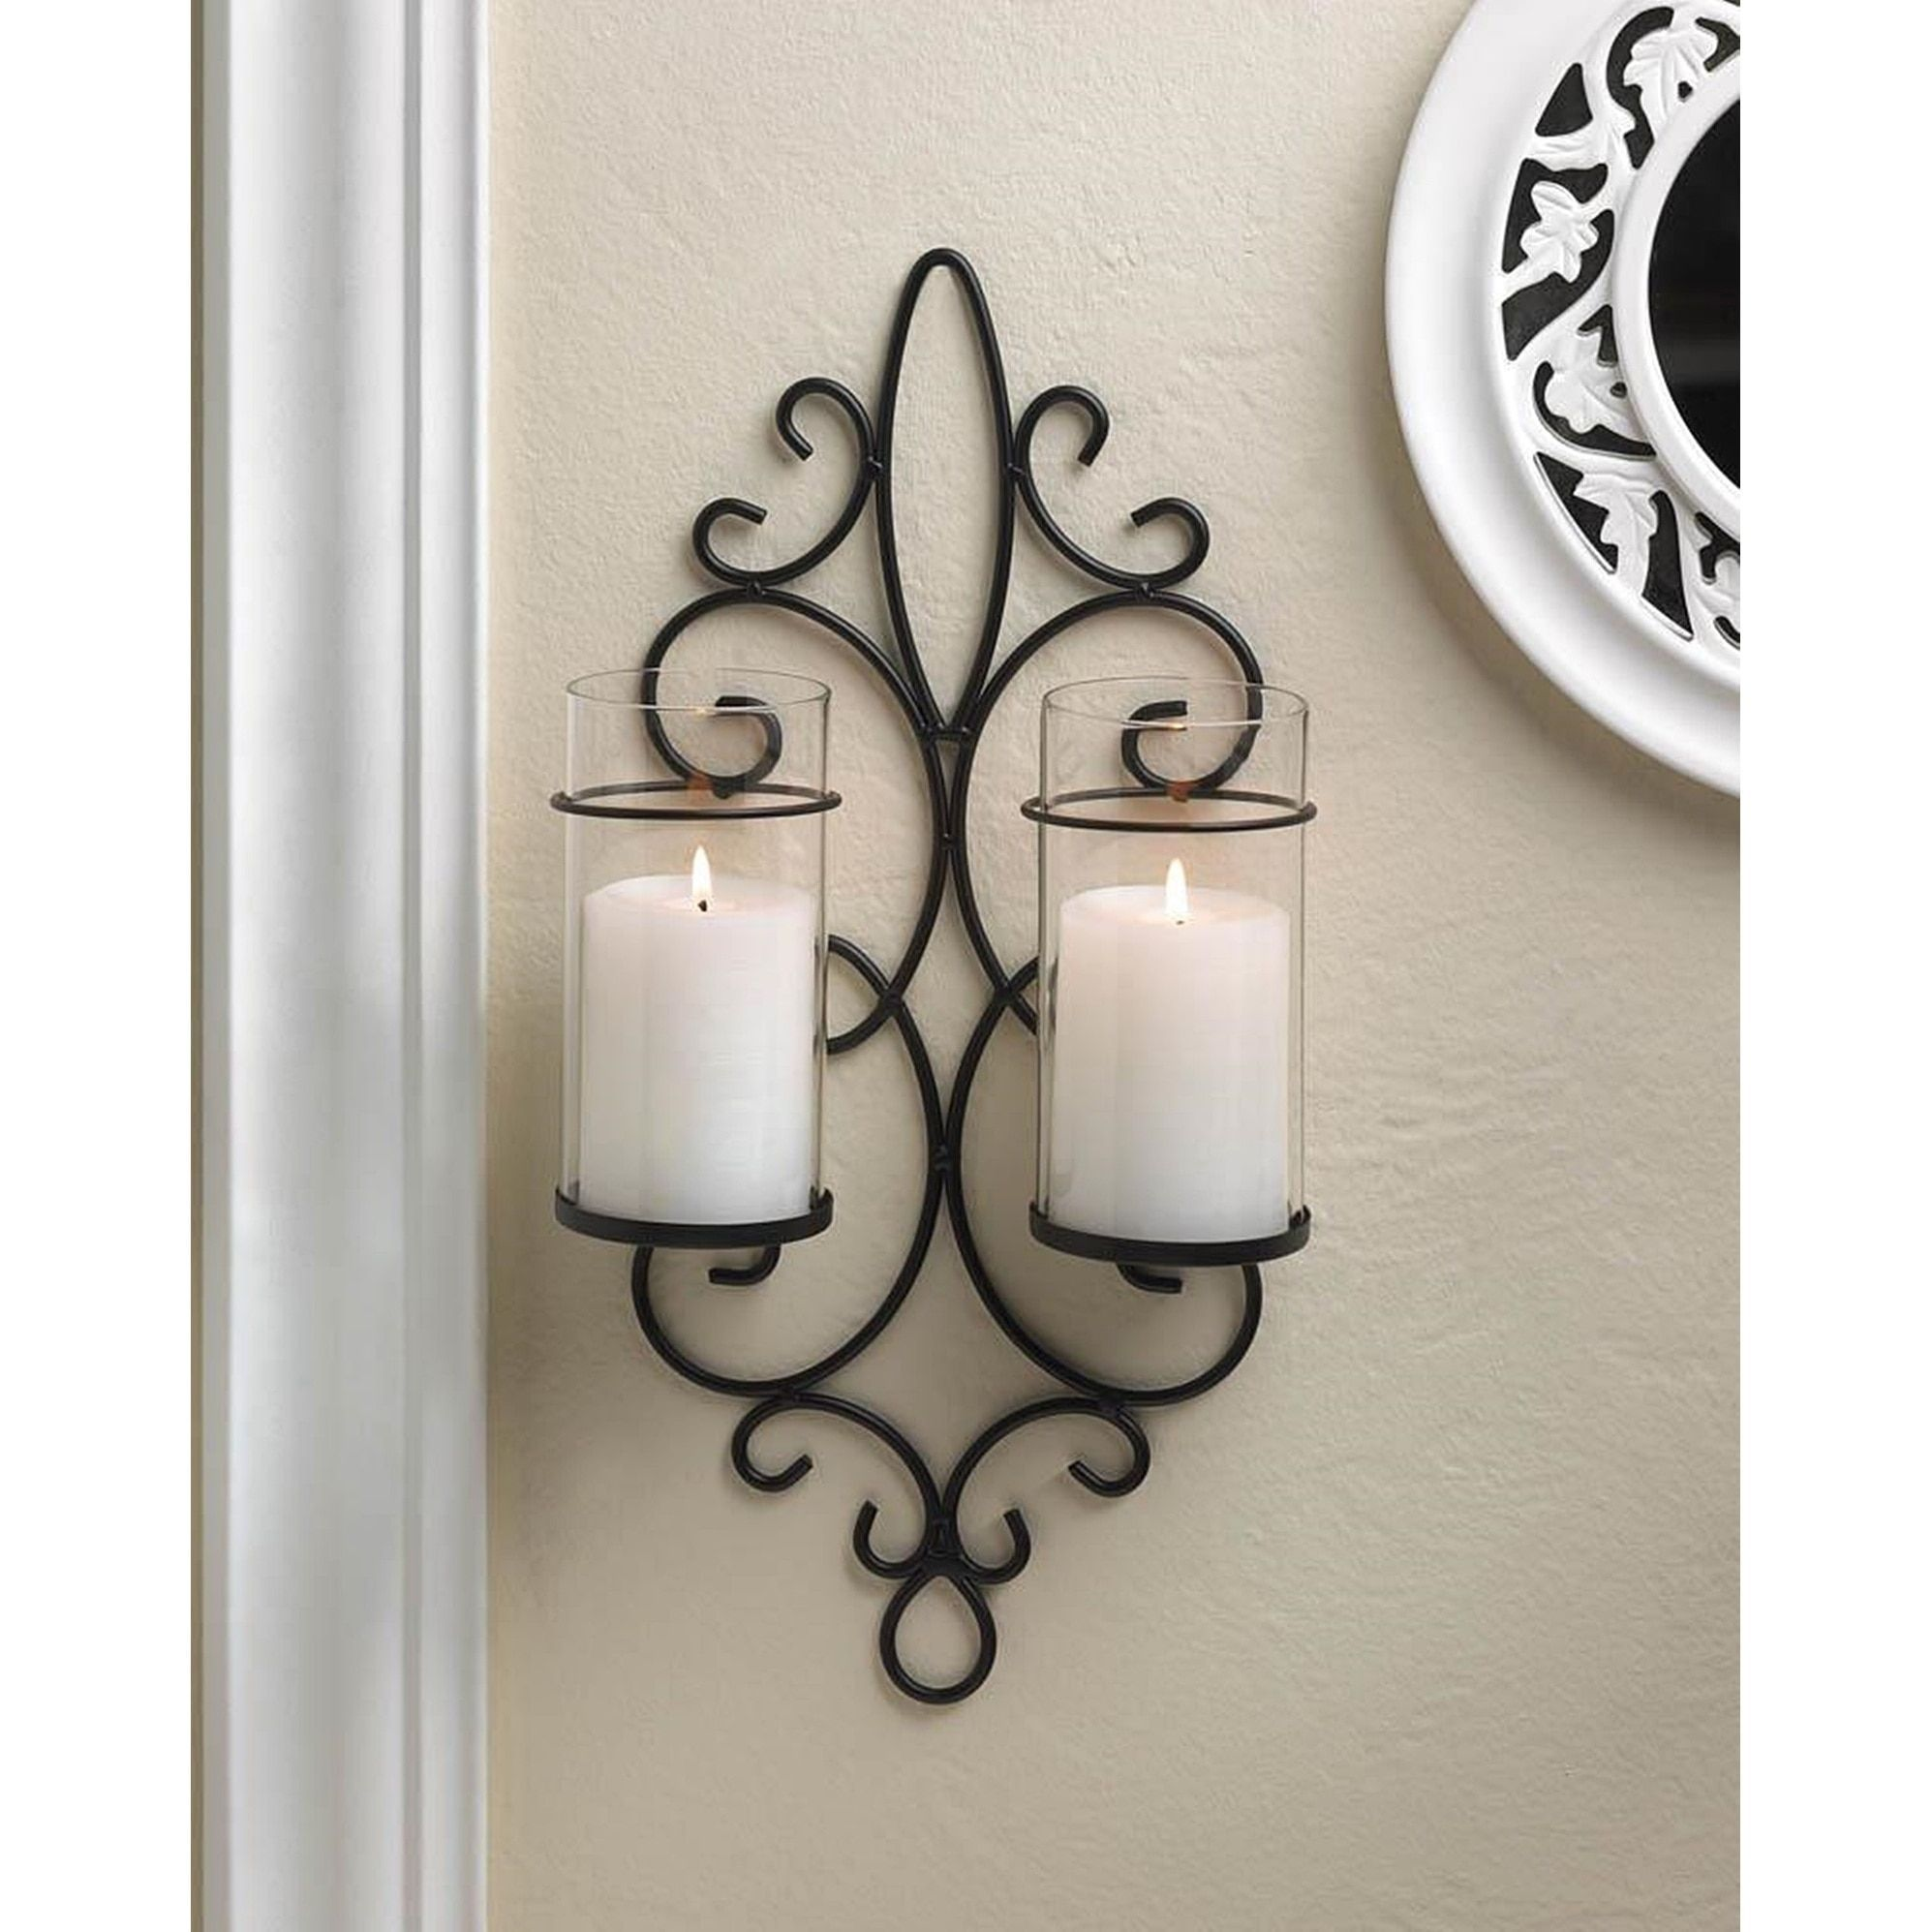 Chippendale Stylish Candle Wall Sconce Features A Beautiful Iron